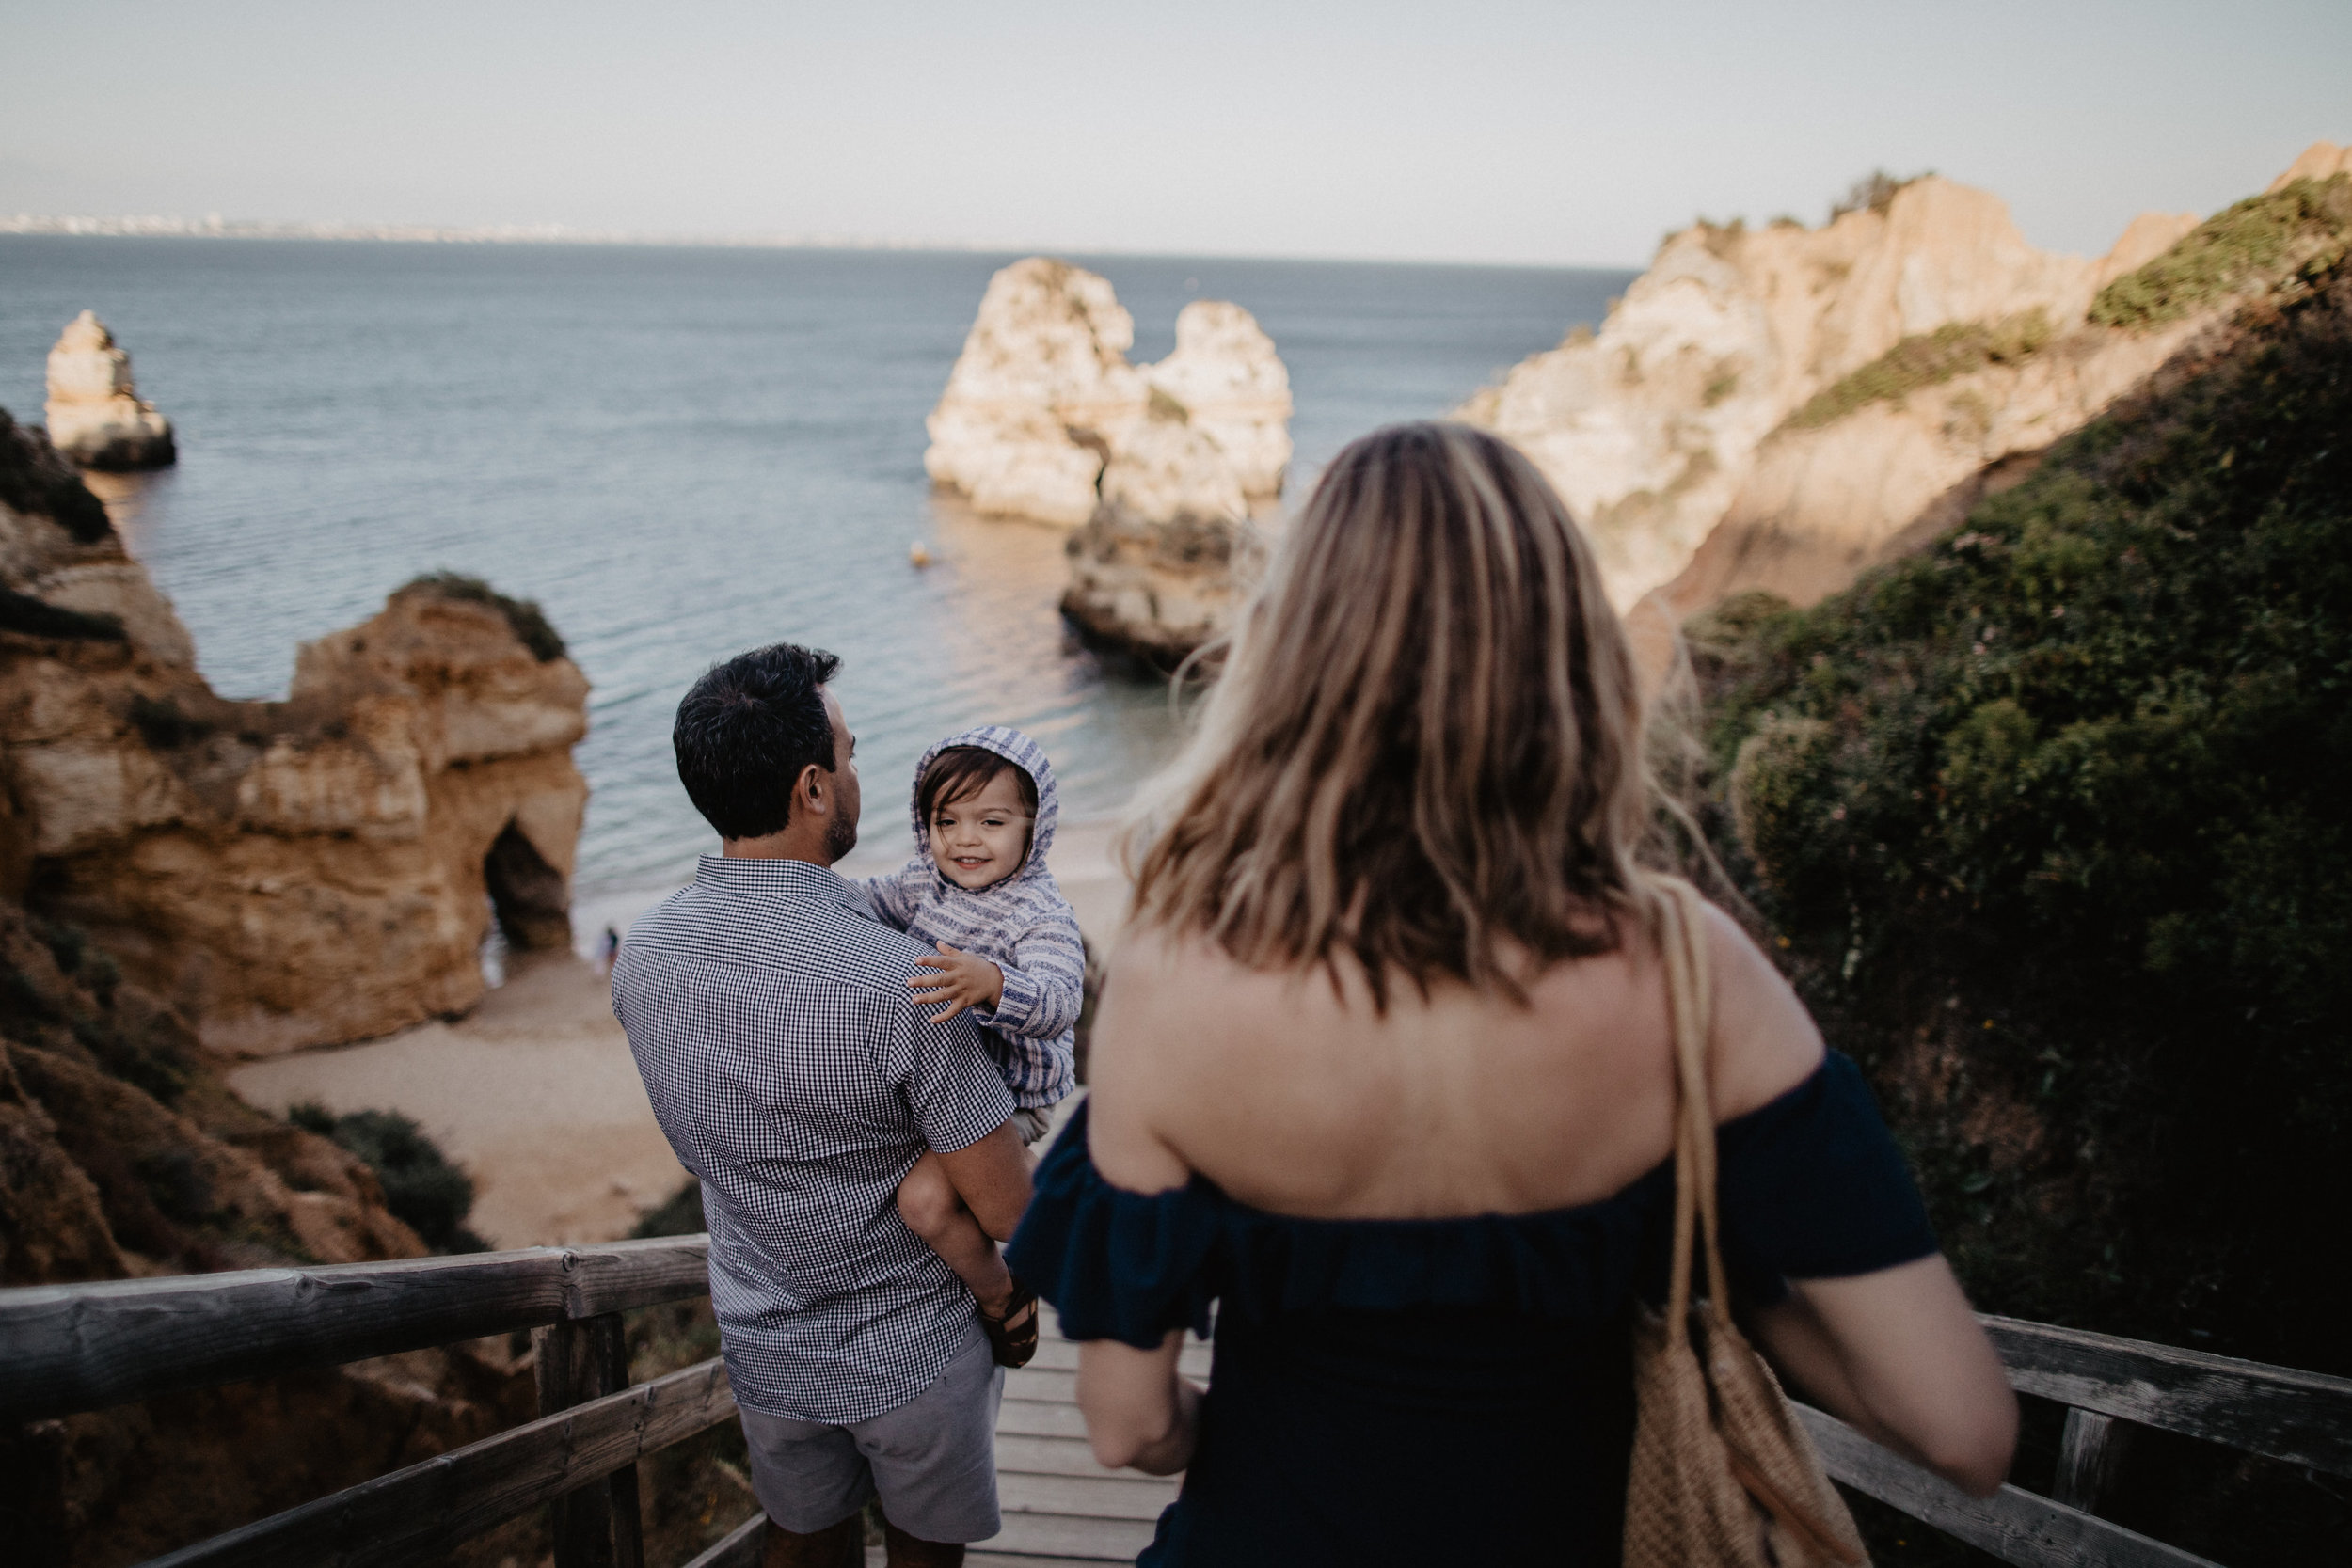 Lapela-Family-photography-Lagos-Algarve22.jpg